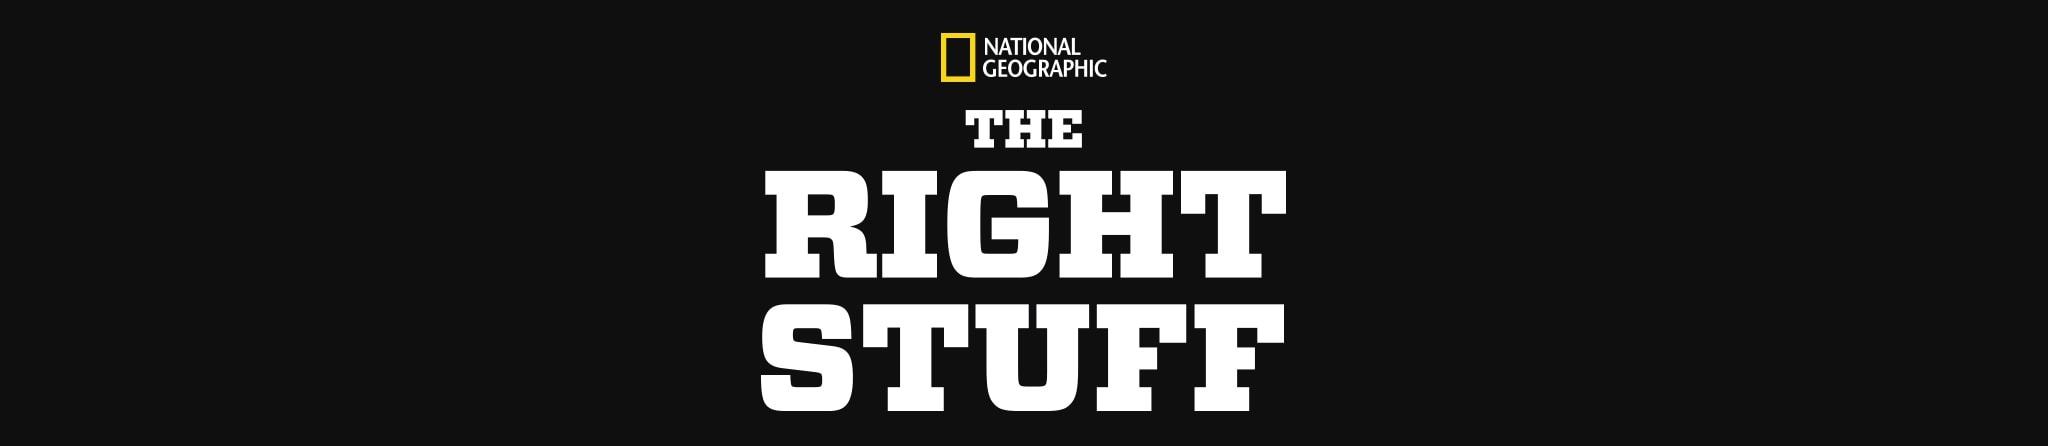 National Geographic | The Right Stuff